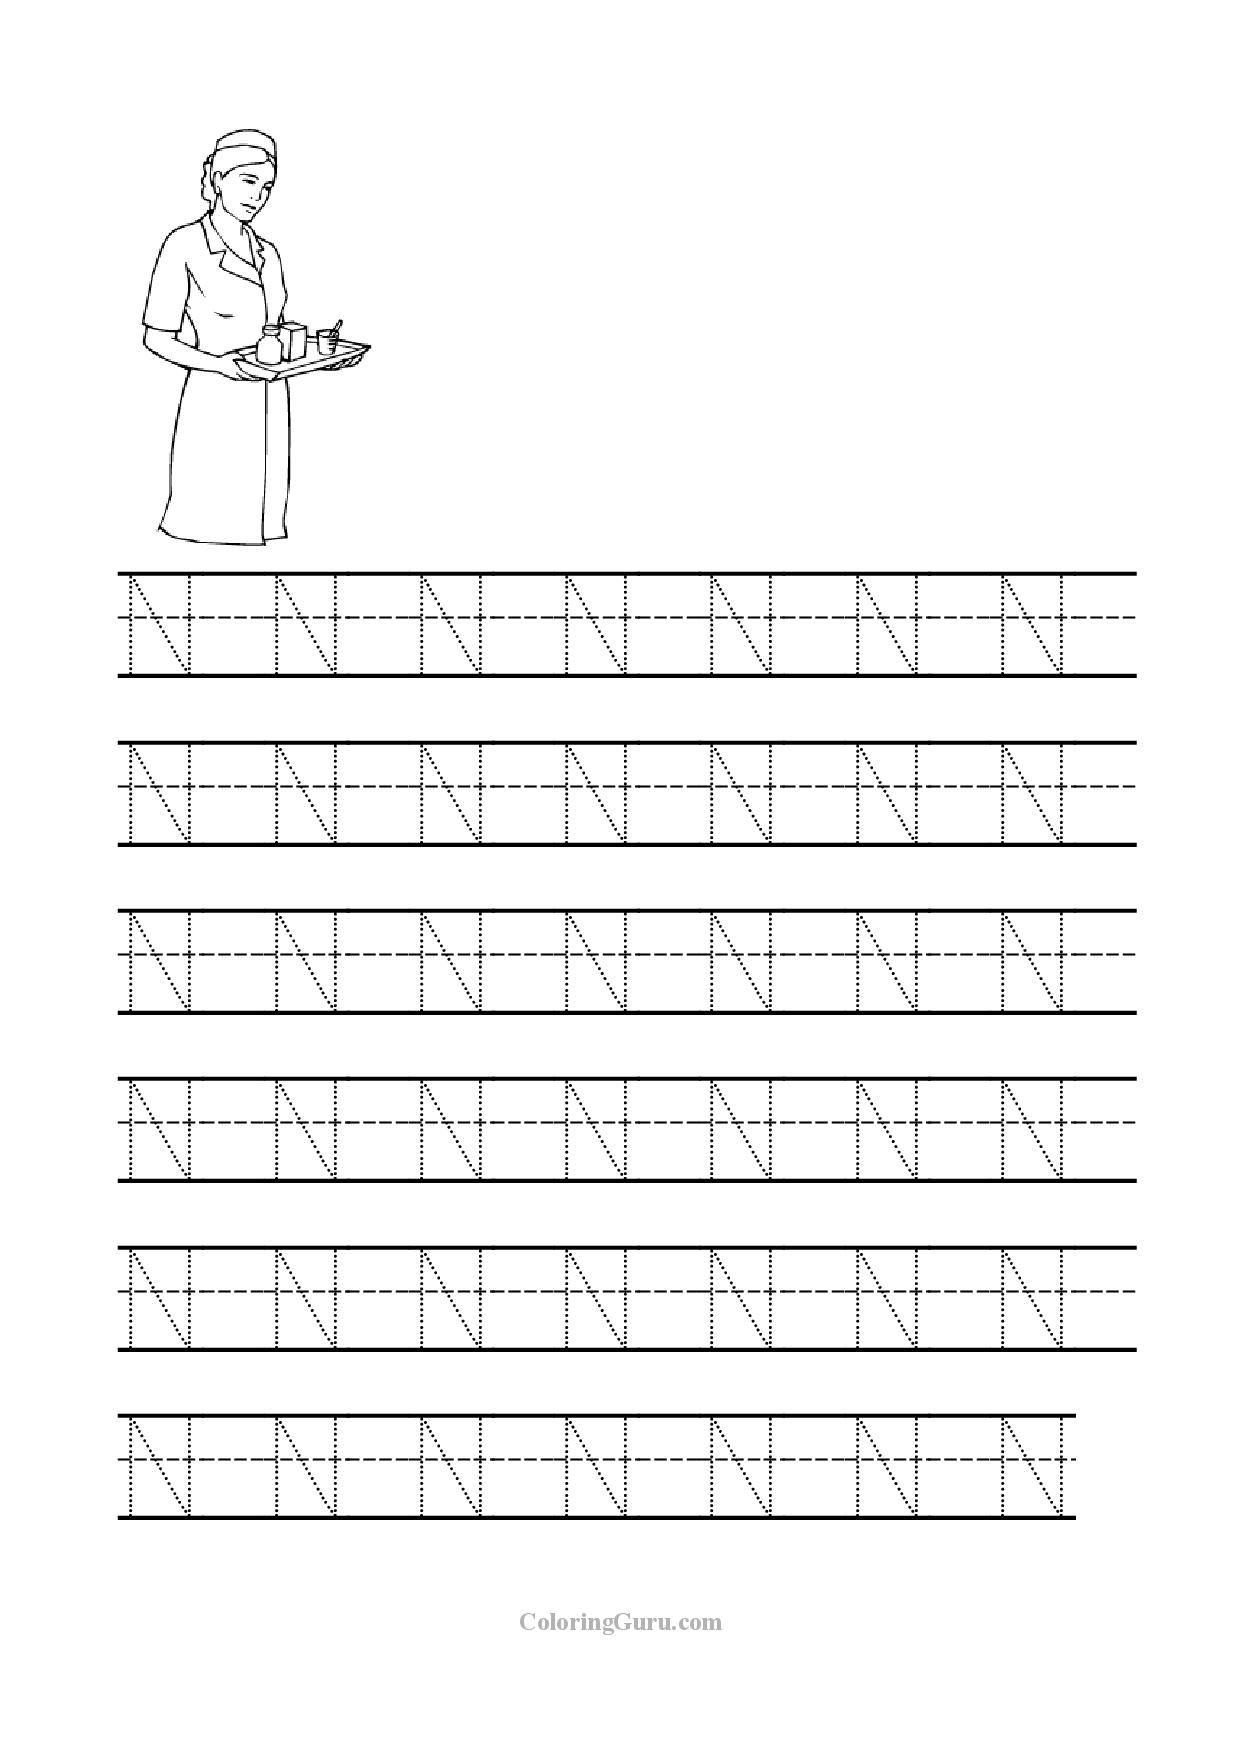 Letter N Preschool Worksheets Free Printable Tracing Letter N Worksheets for Preschool